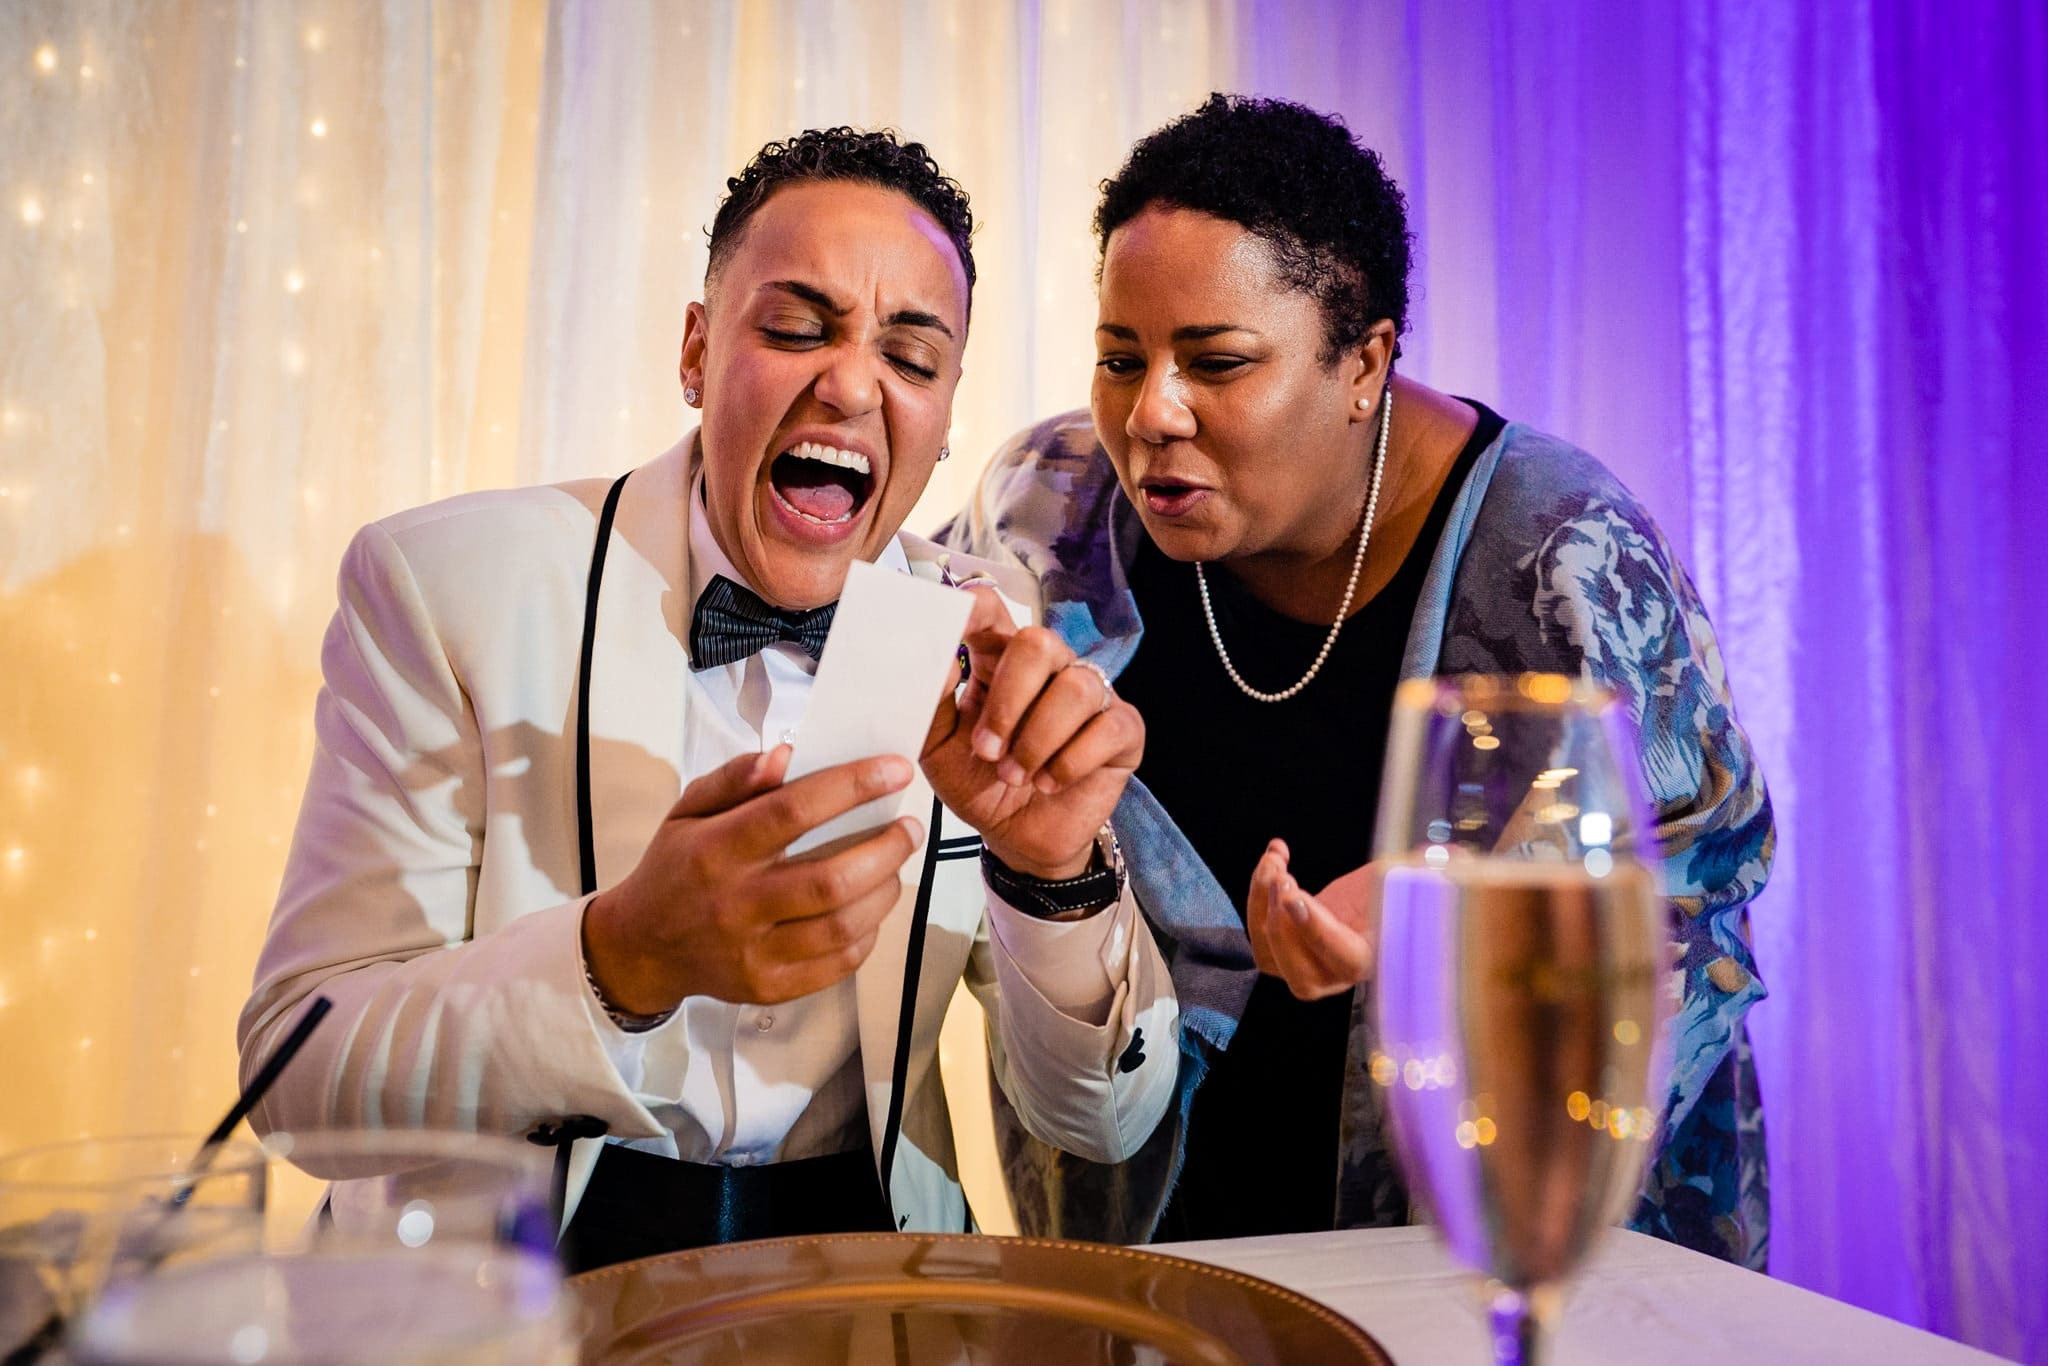 Bride laughing with wedding guest